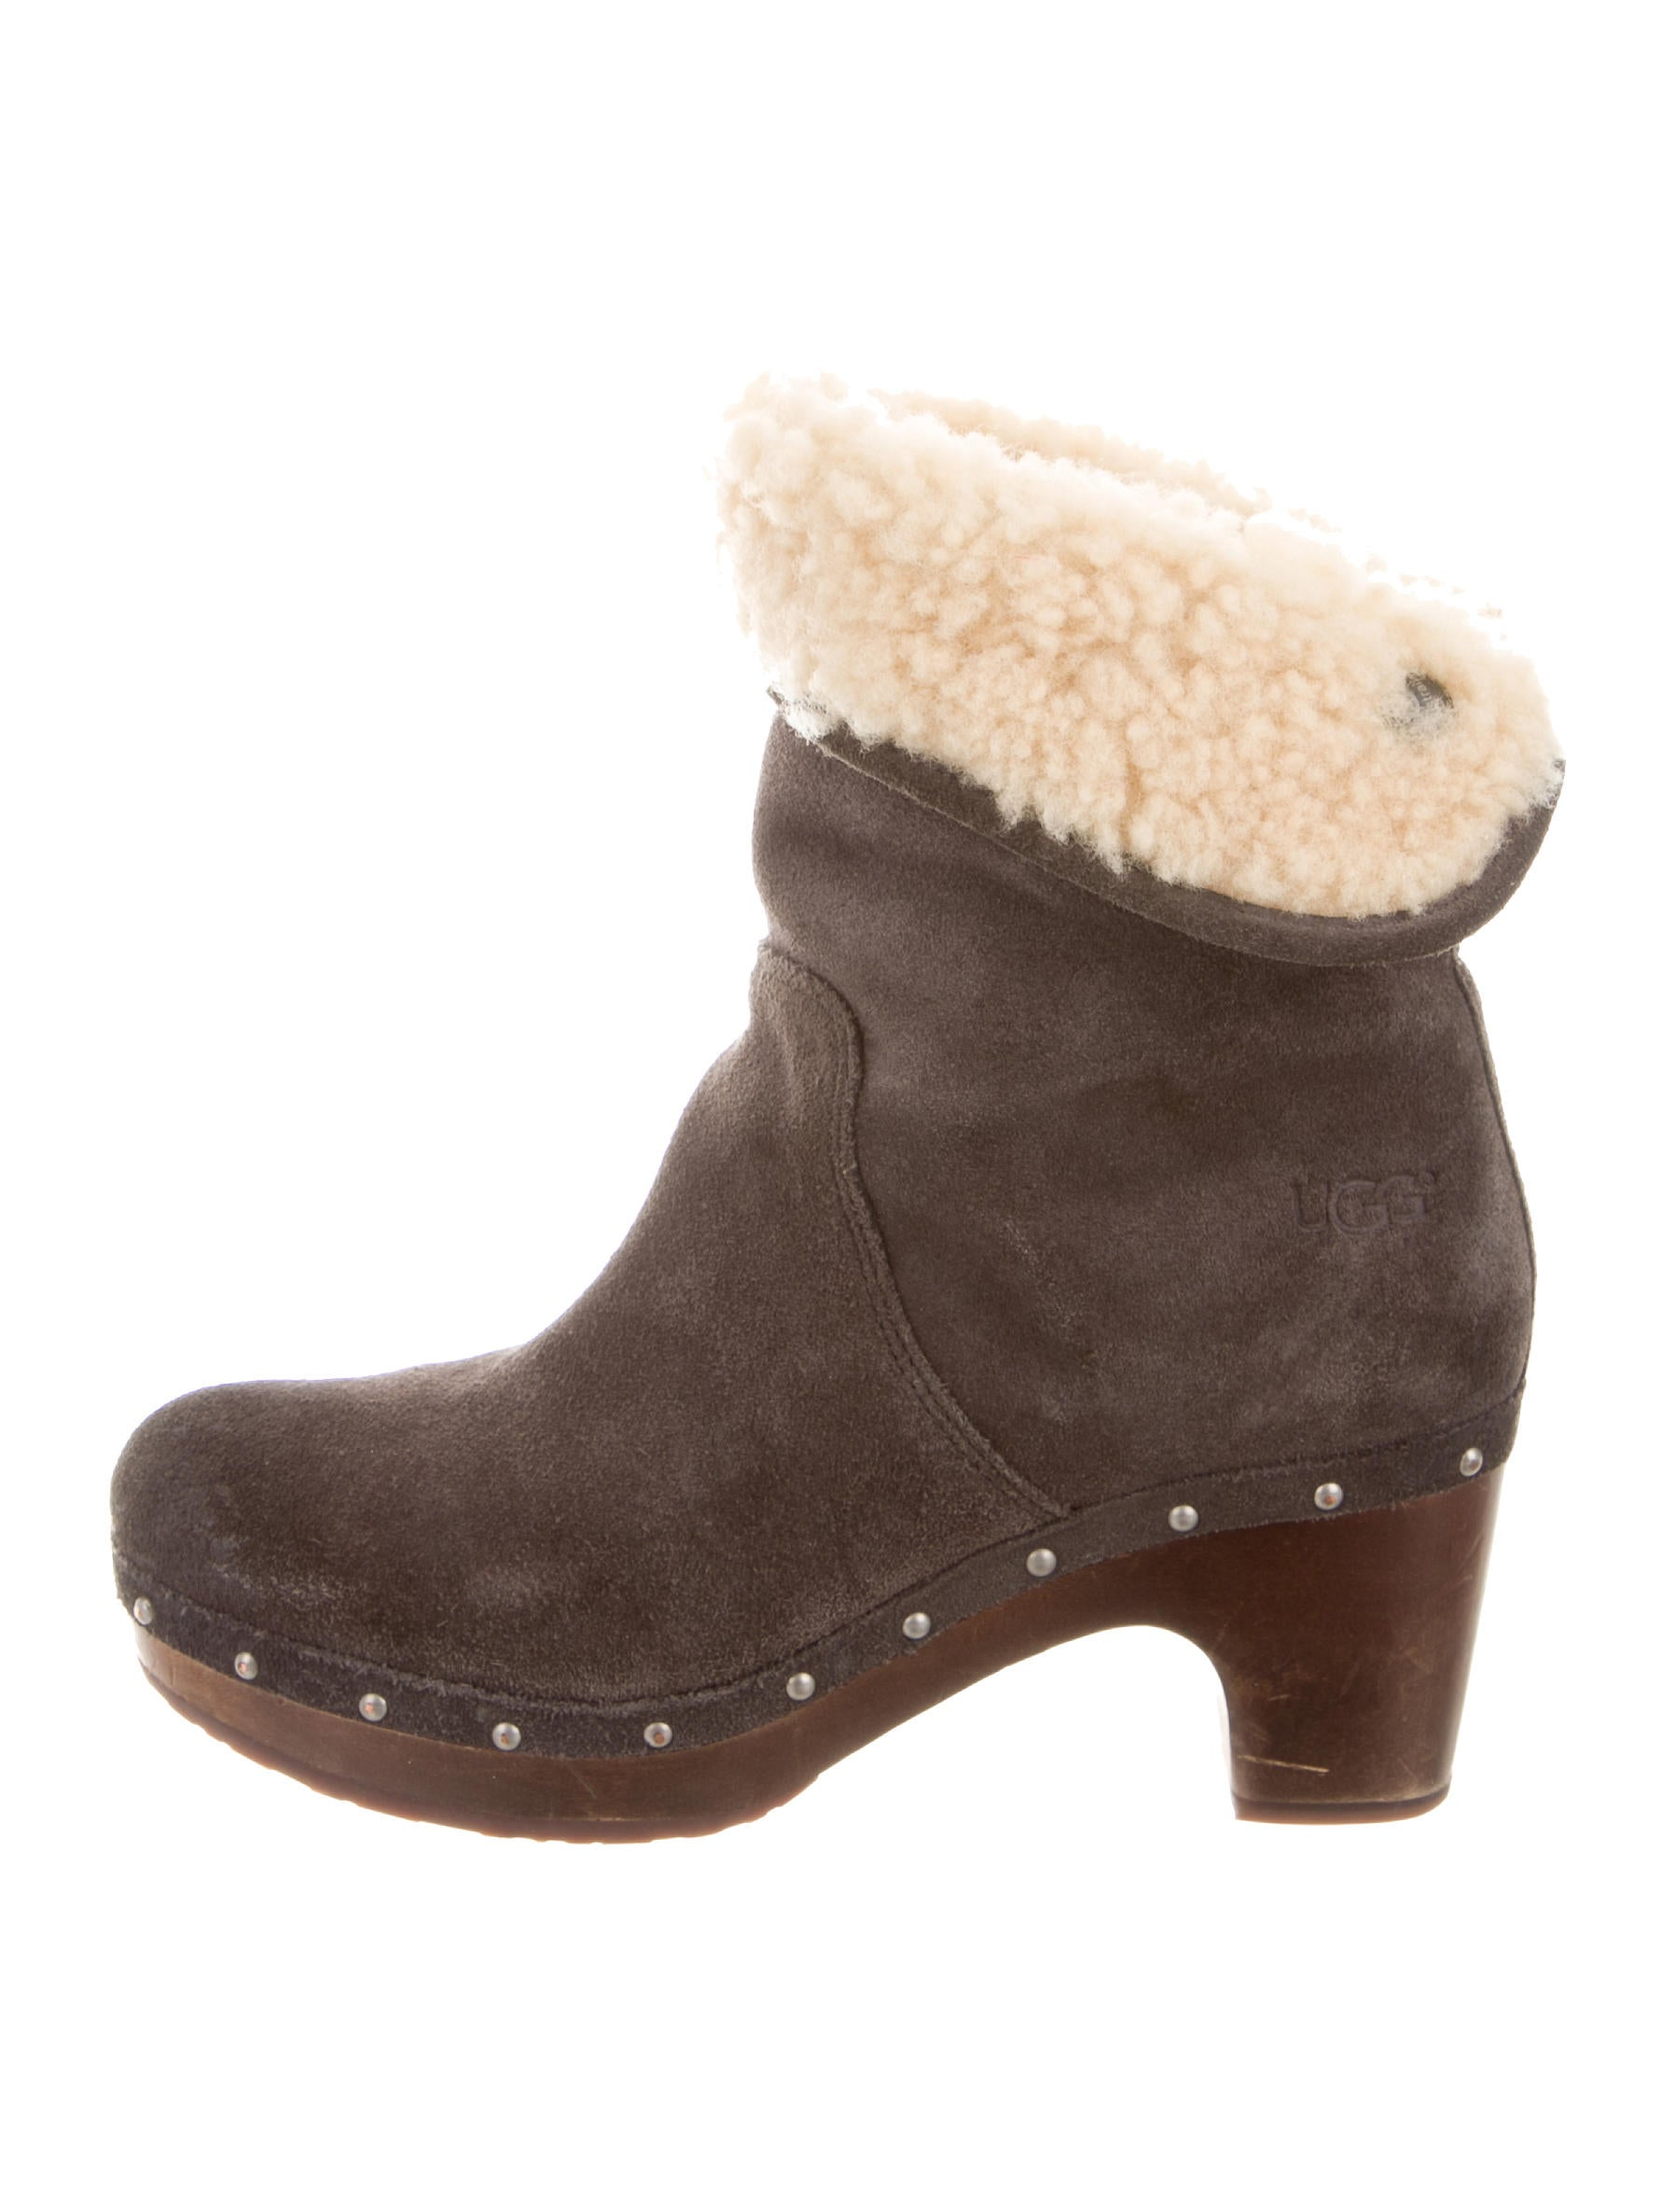 ugg australia suede lynnea ankle boots shoes